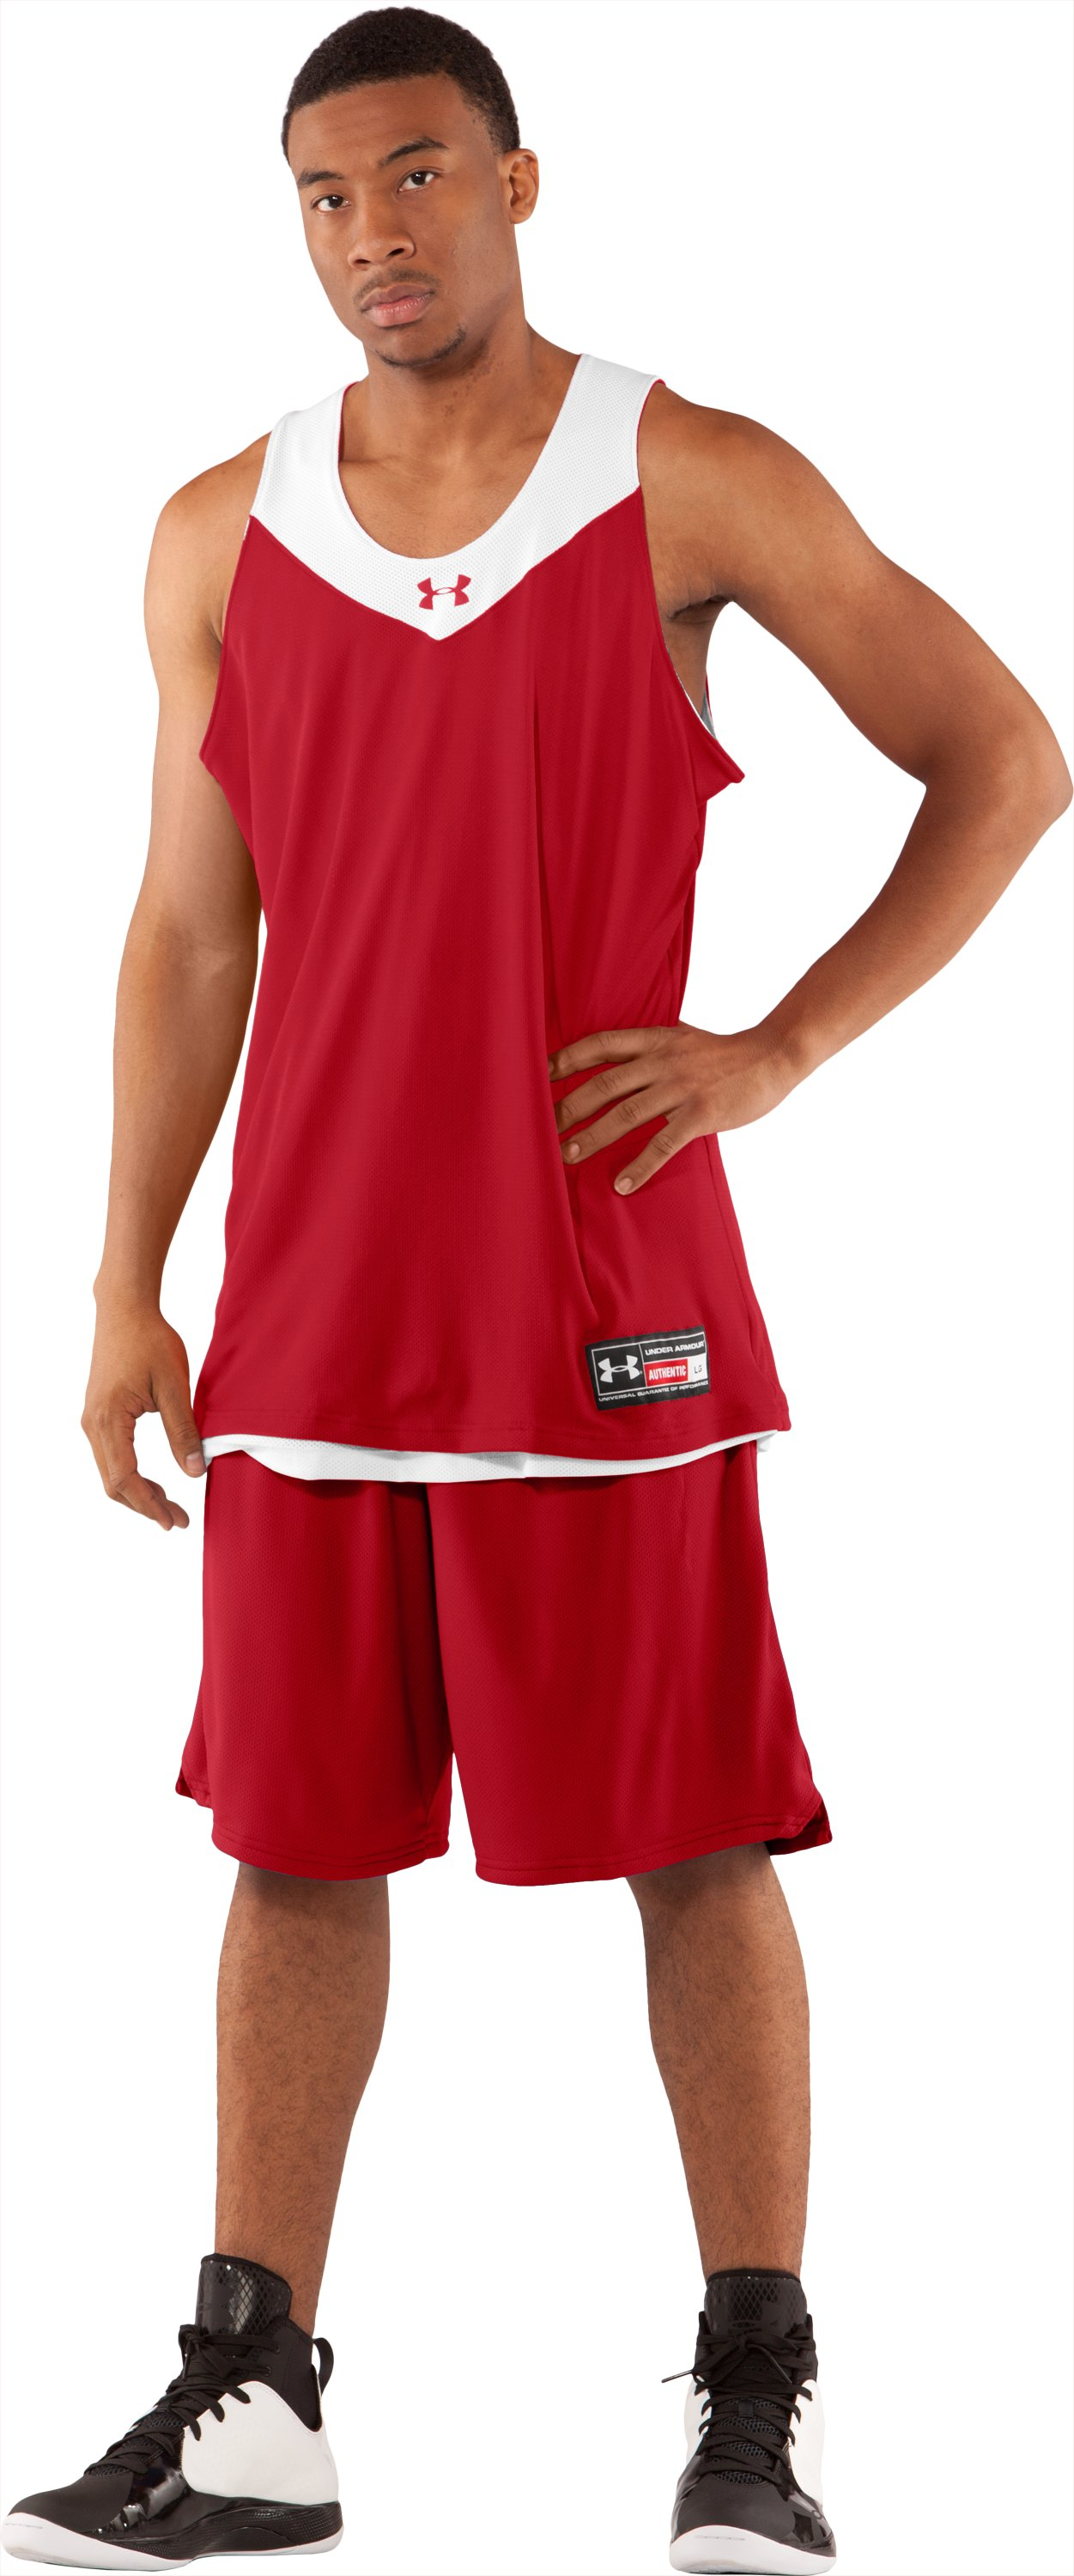 Men's Repeat Reversible Basketball Jersey, Red, Front